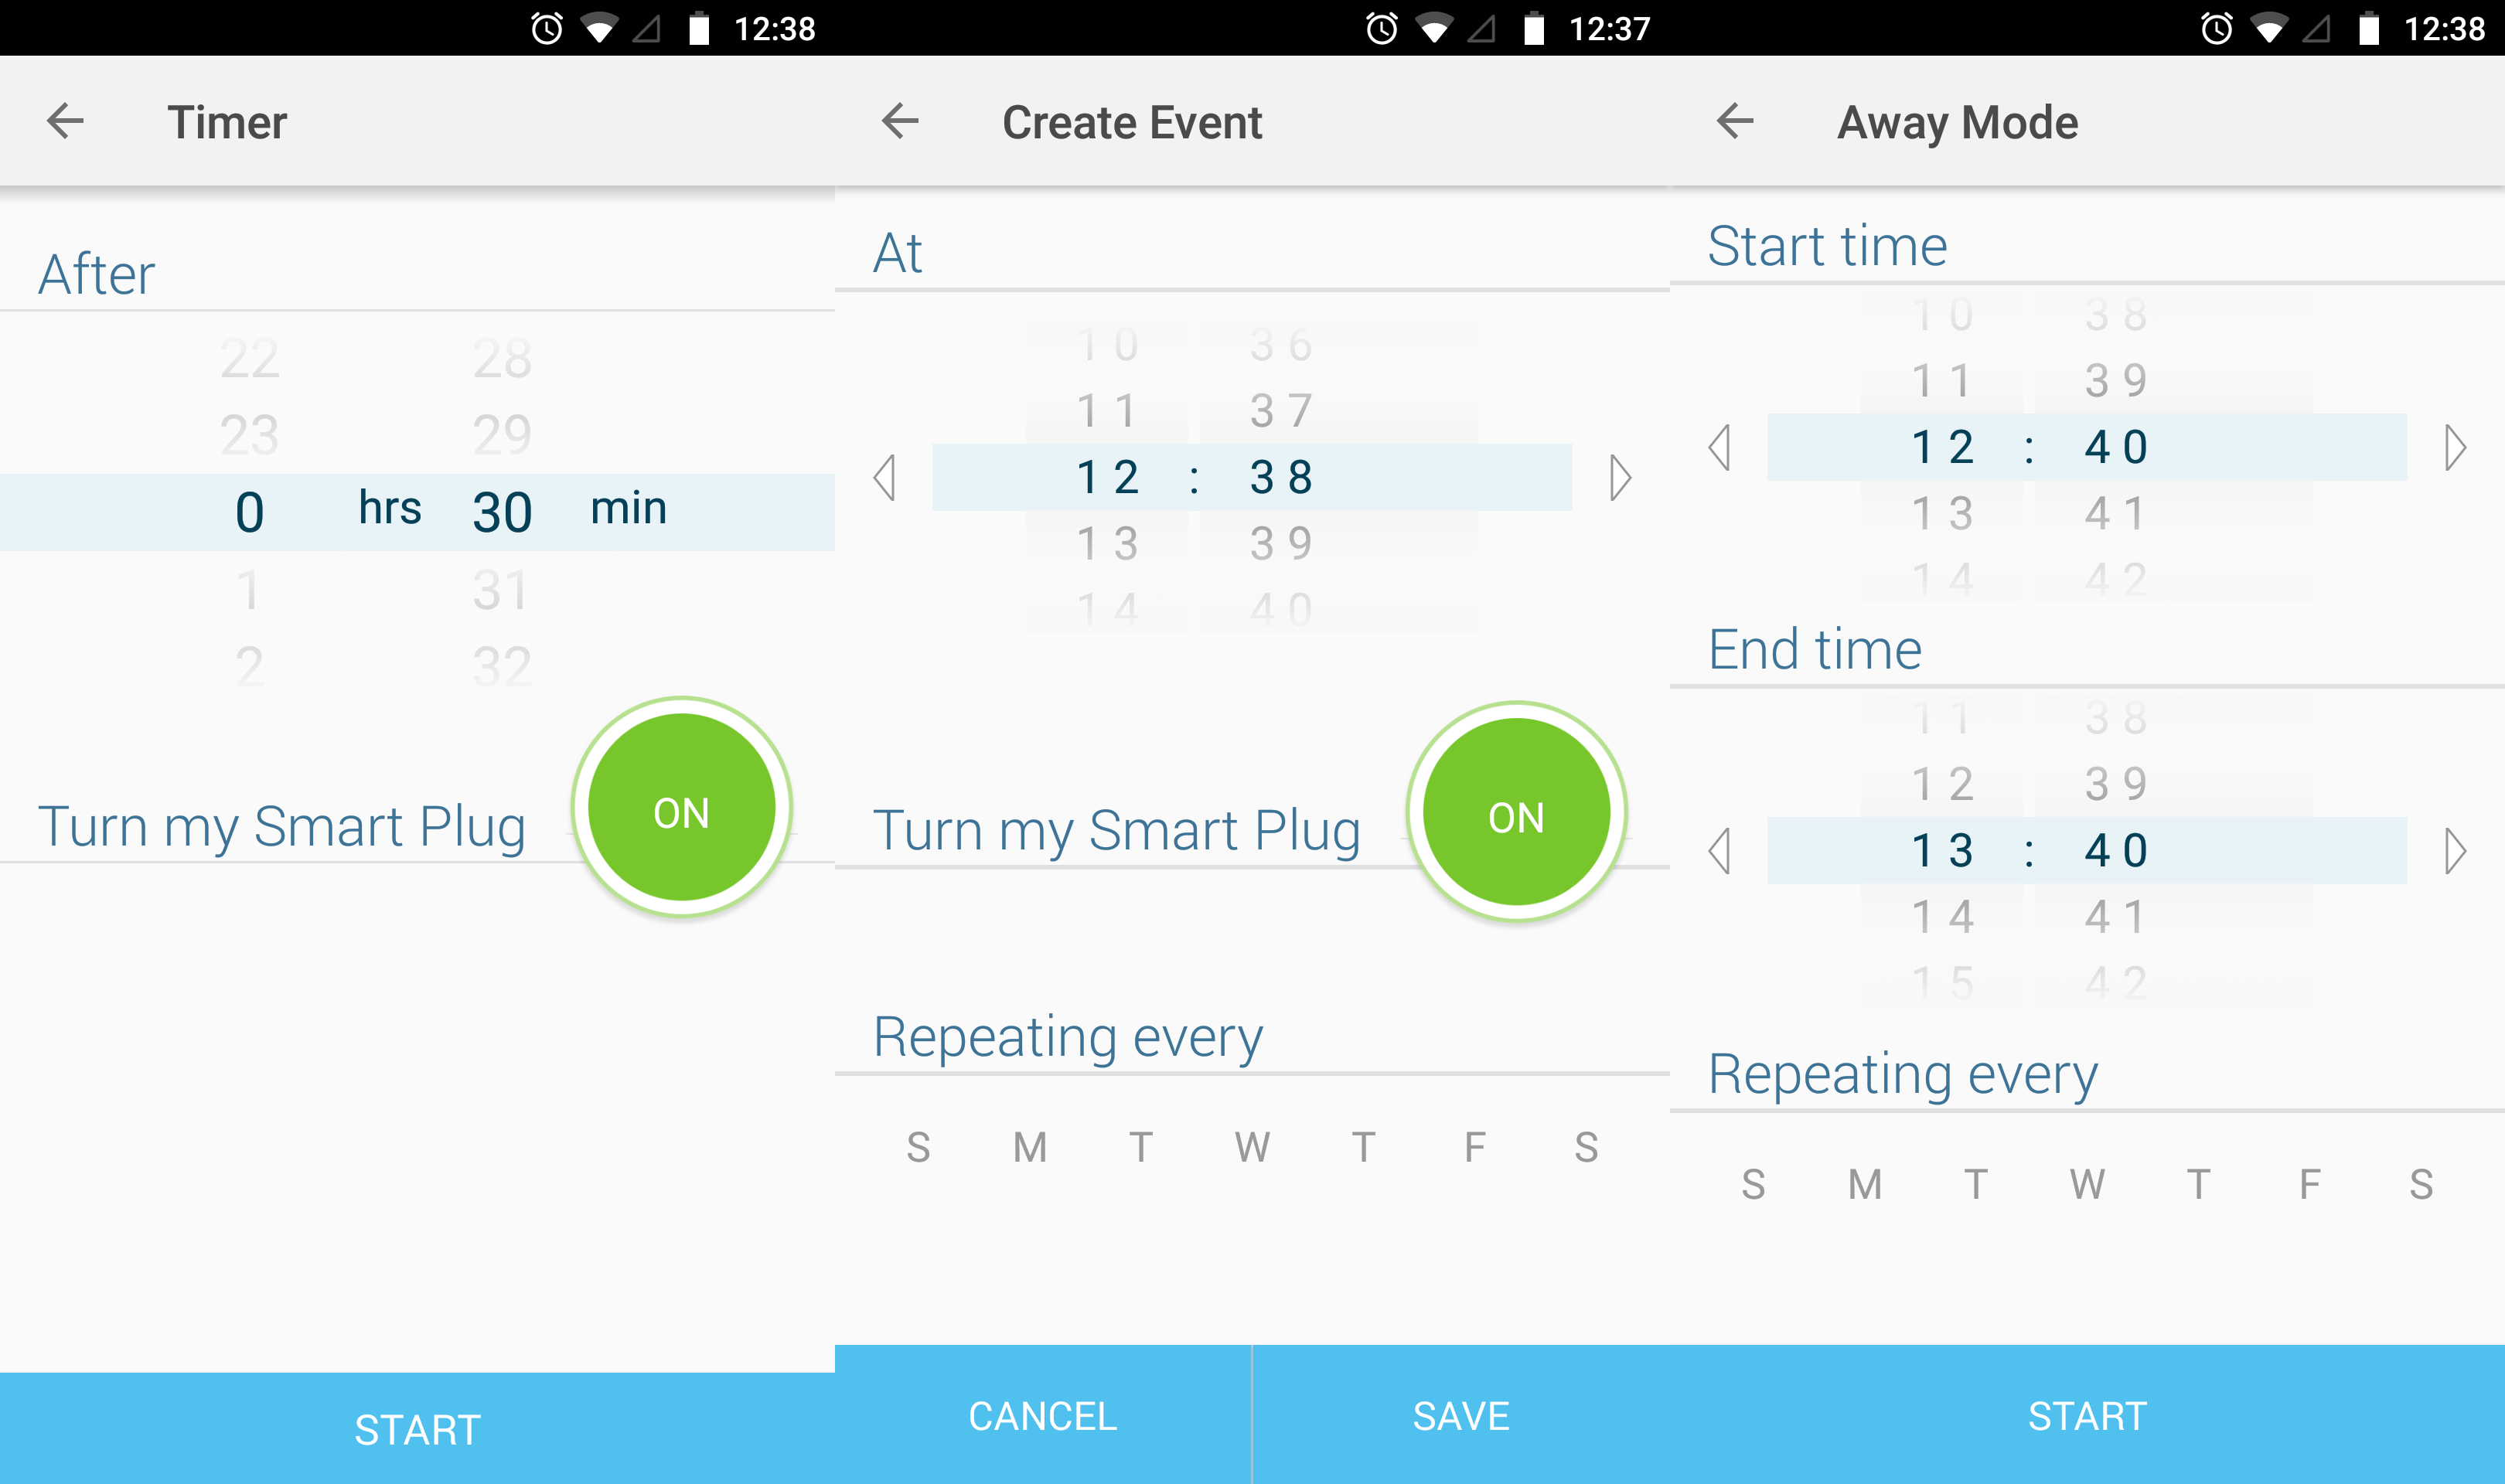 TP-Link Kasa app screenshots showing schedules and timers